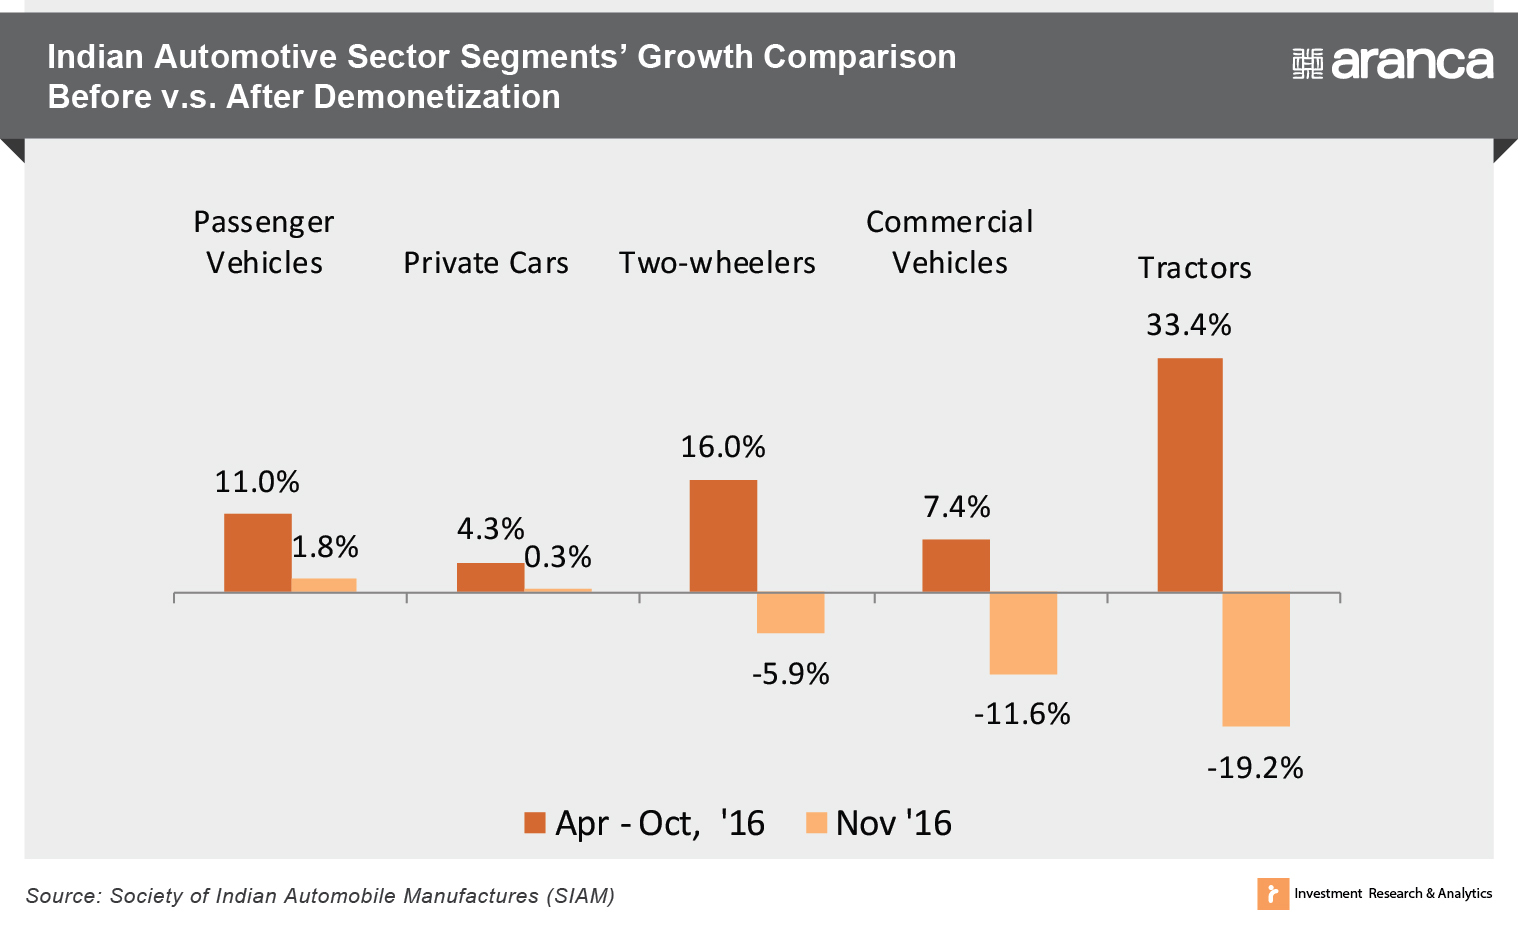 Indian Automotive Sector Segments' Growth Comparison Before v.s. After Demonetization